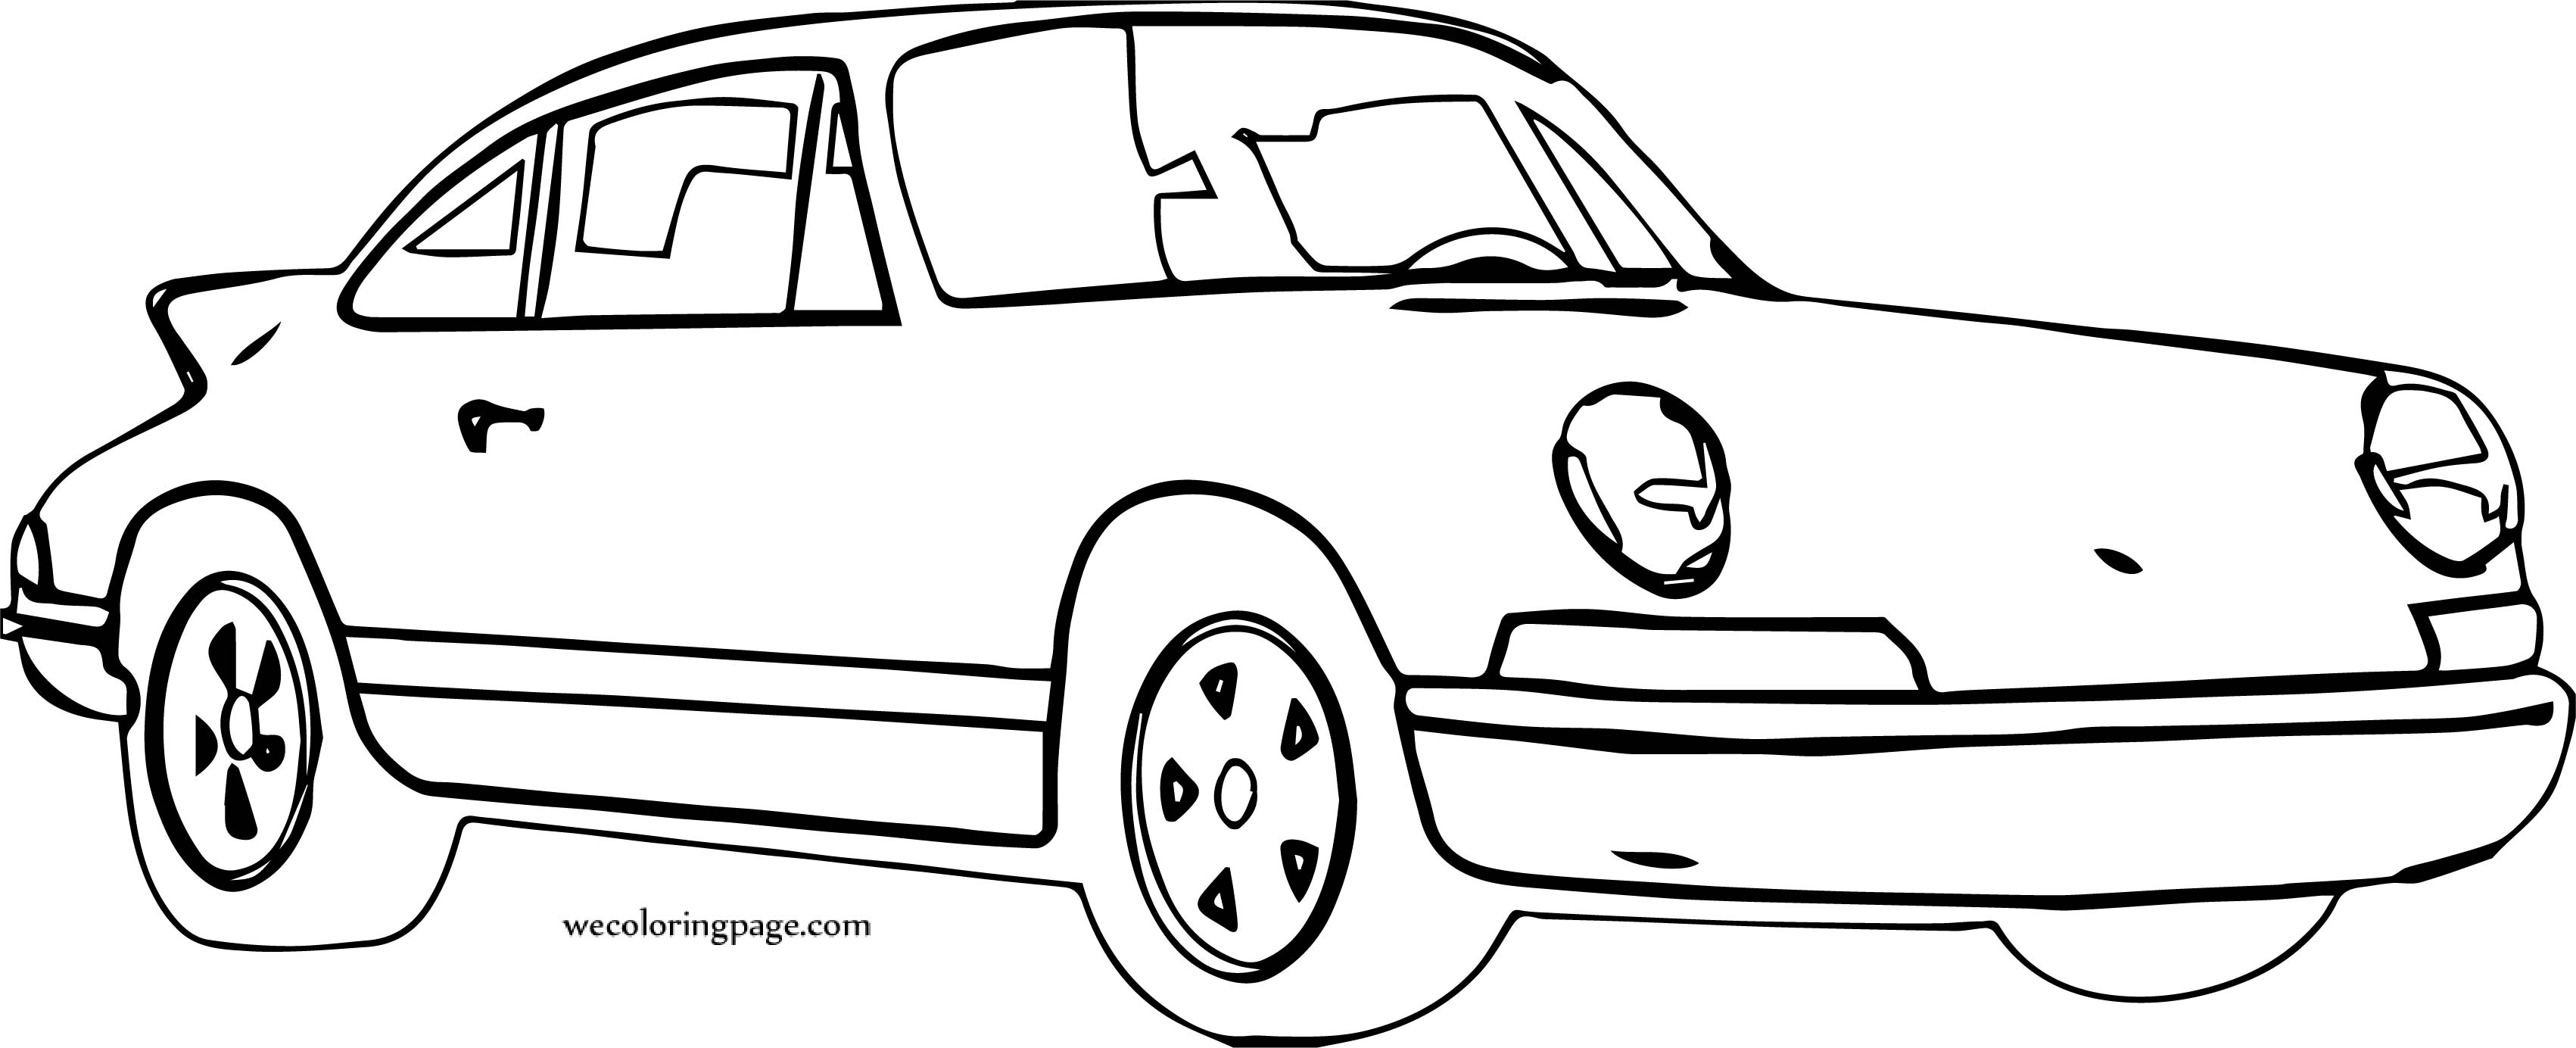 Car Wecoloringpage Coloring Page 140